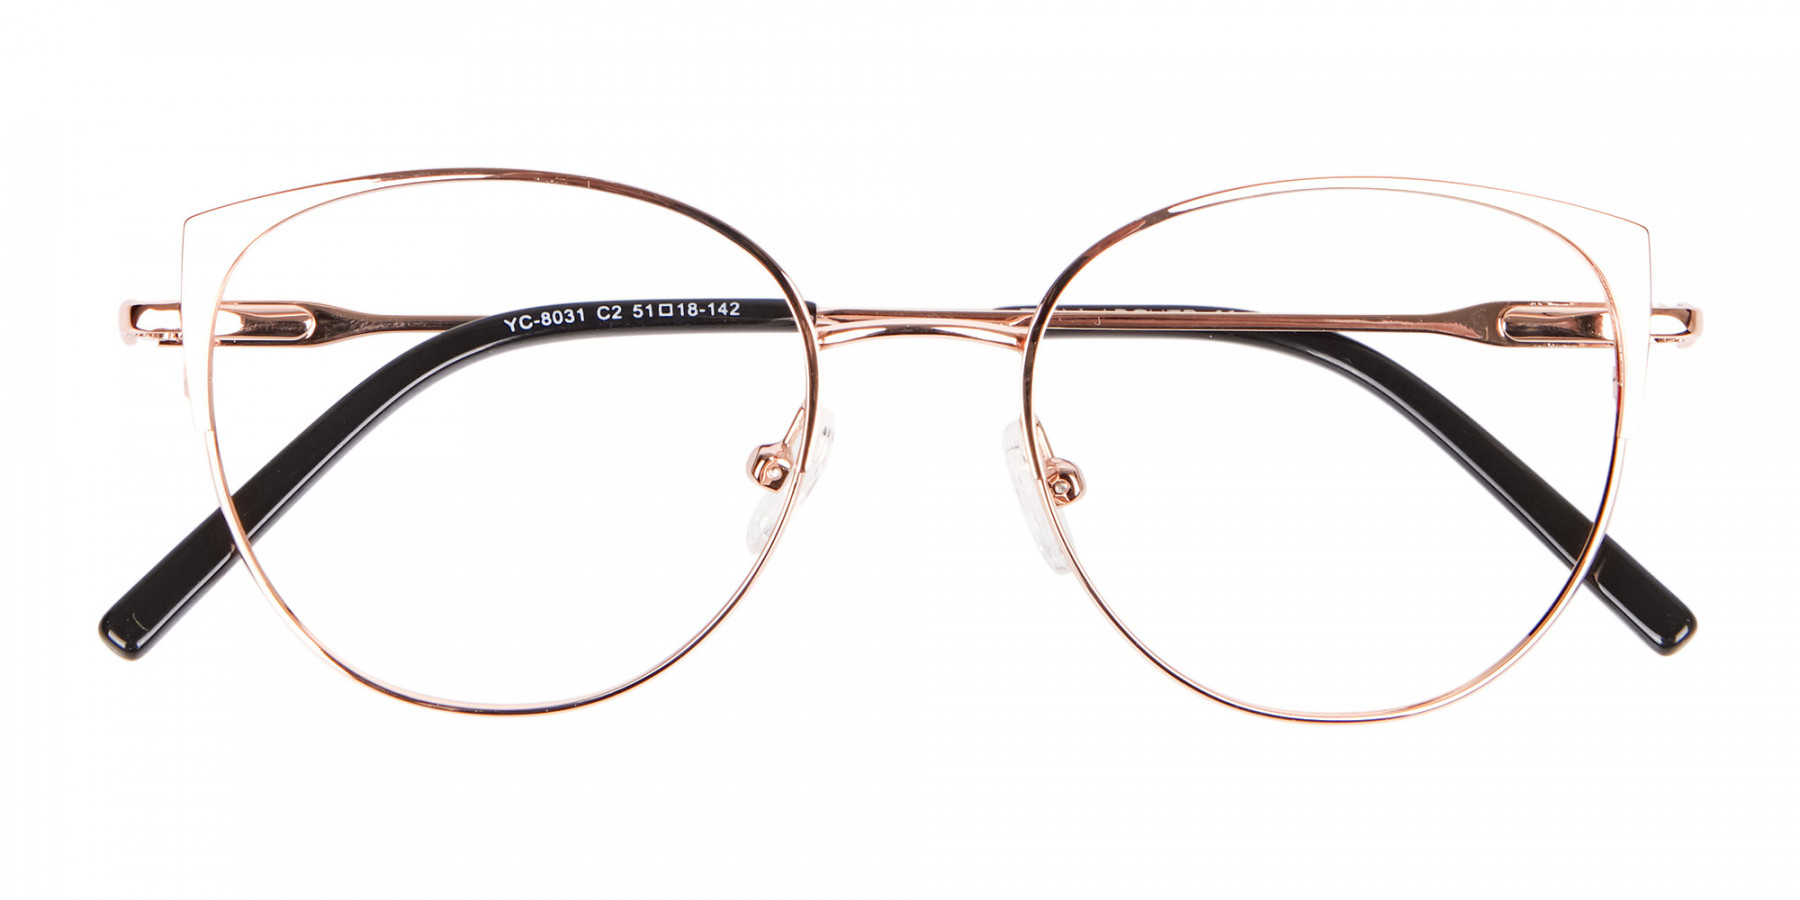 Classic Textured Glasses in Rose-Gold - 1